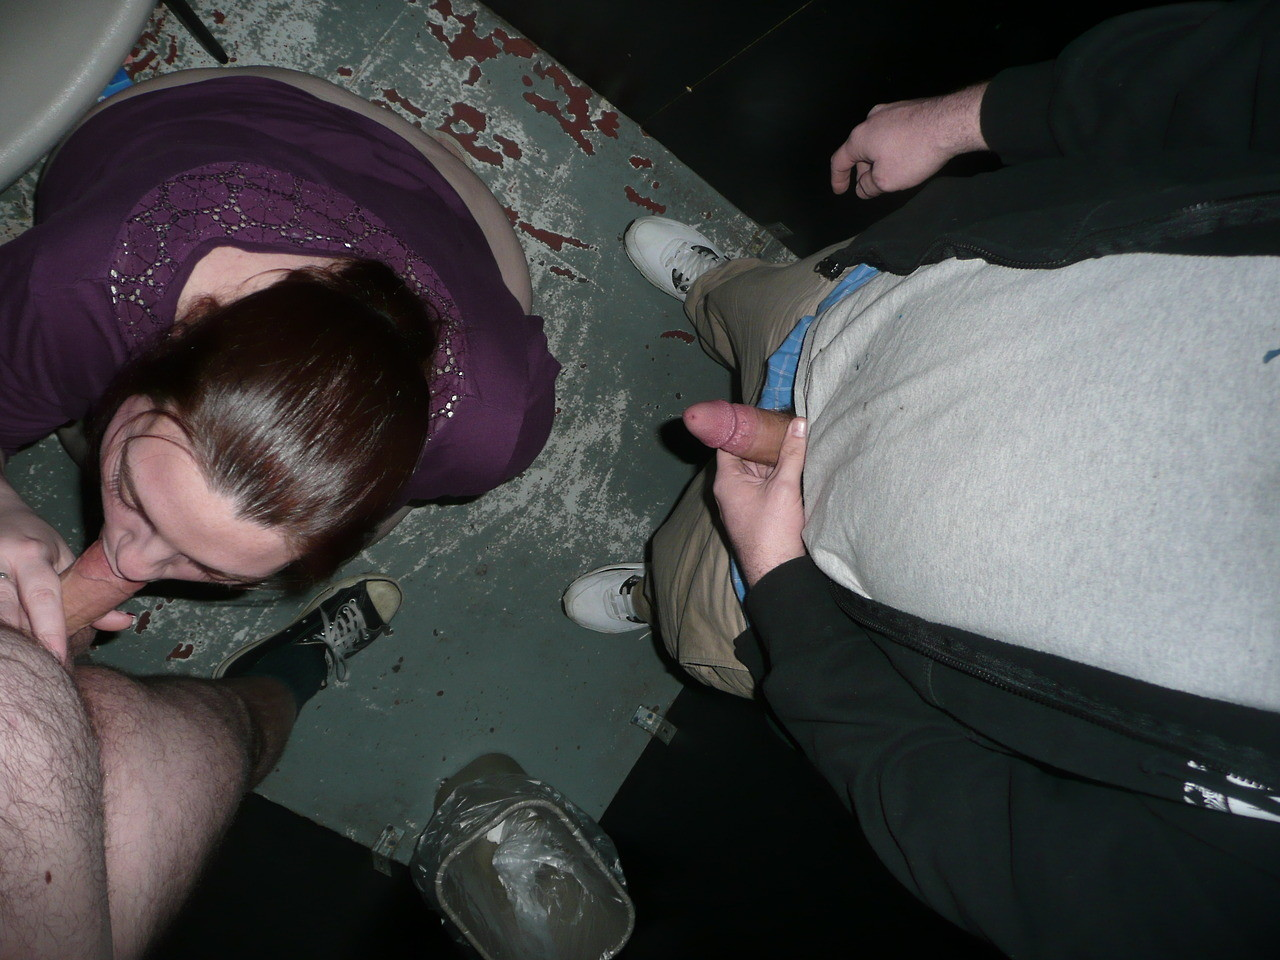 Slave maid chained mistress teen